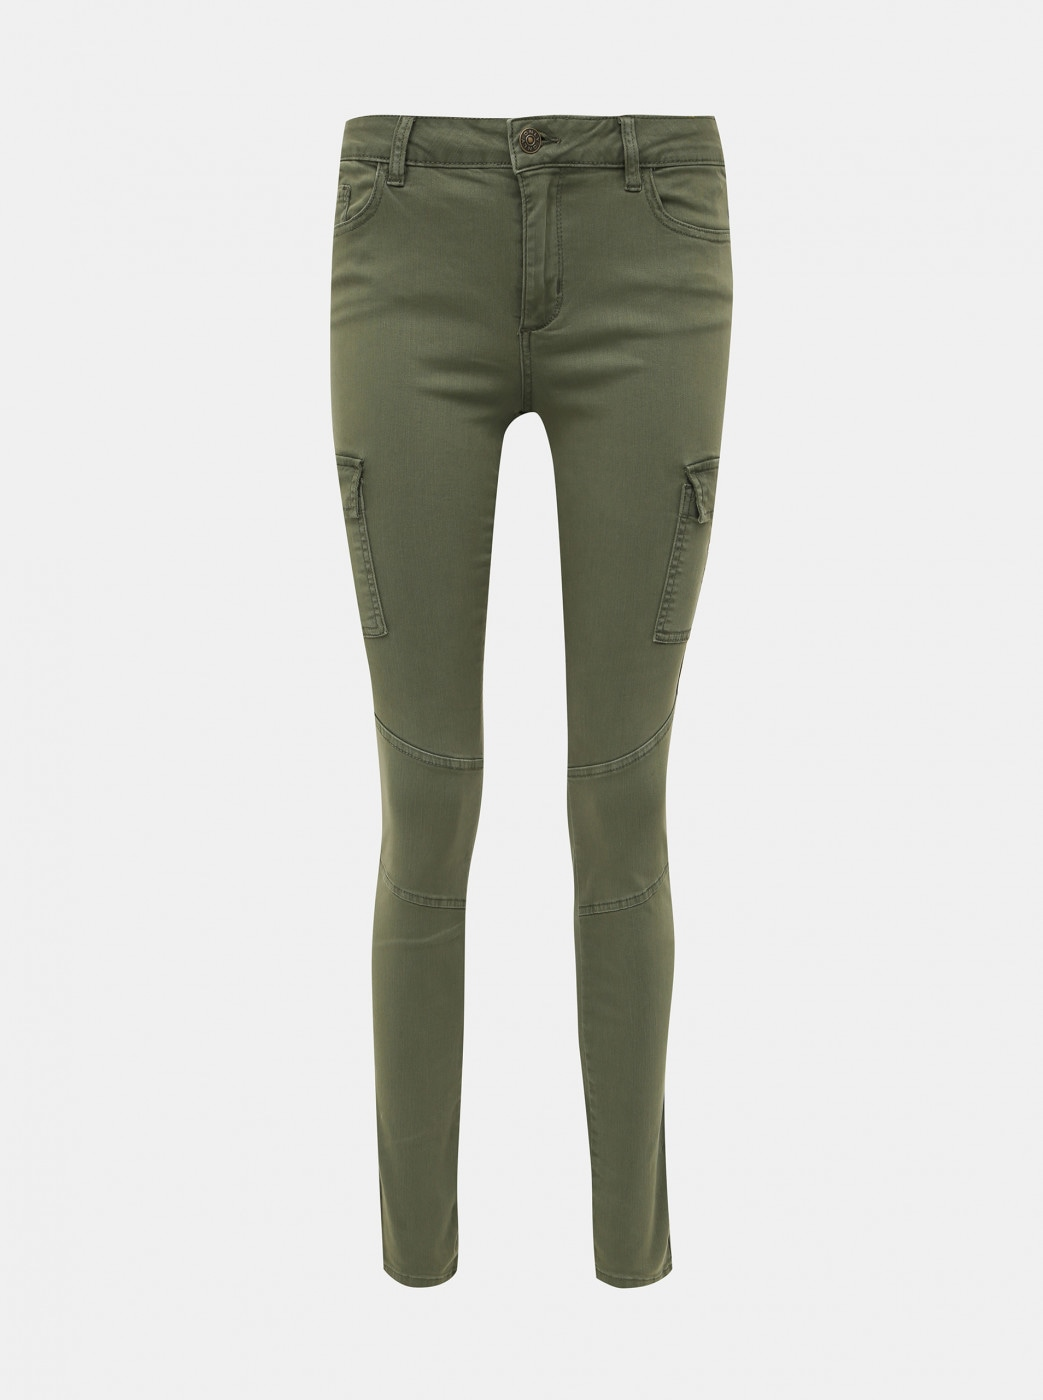 Khaki skinny fit pants with pockets ONLY Cece-Bibi